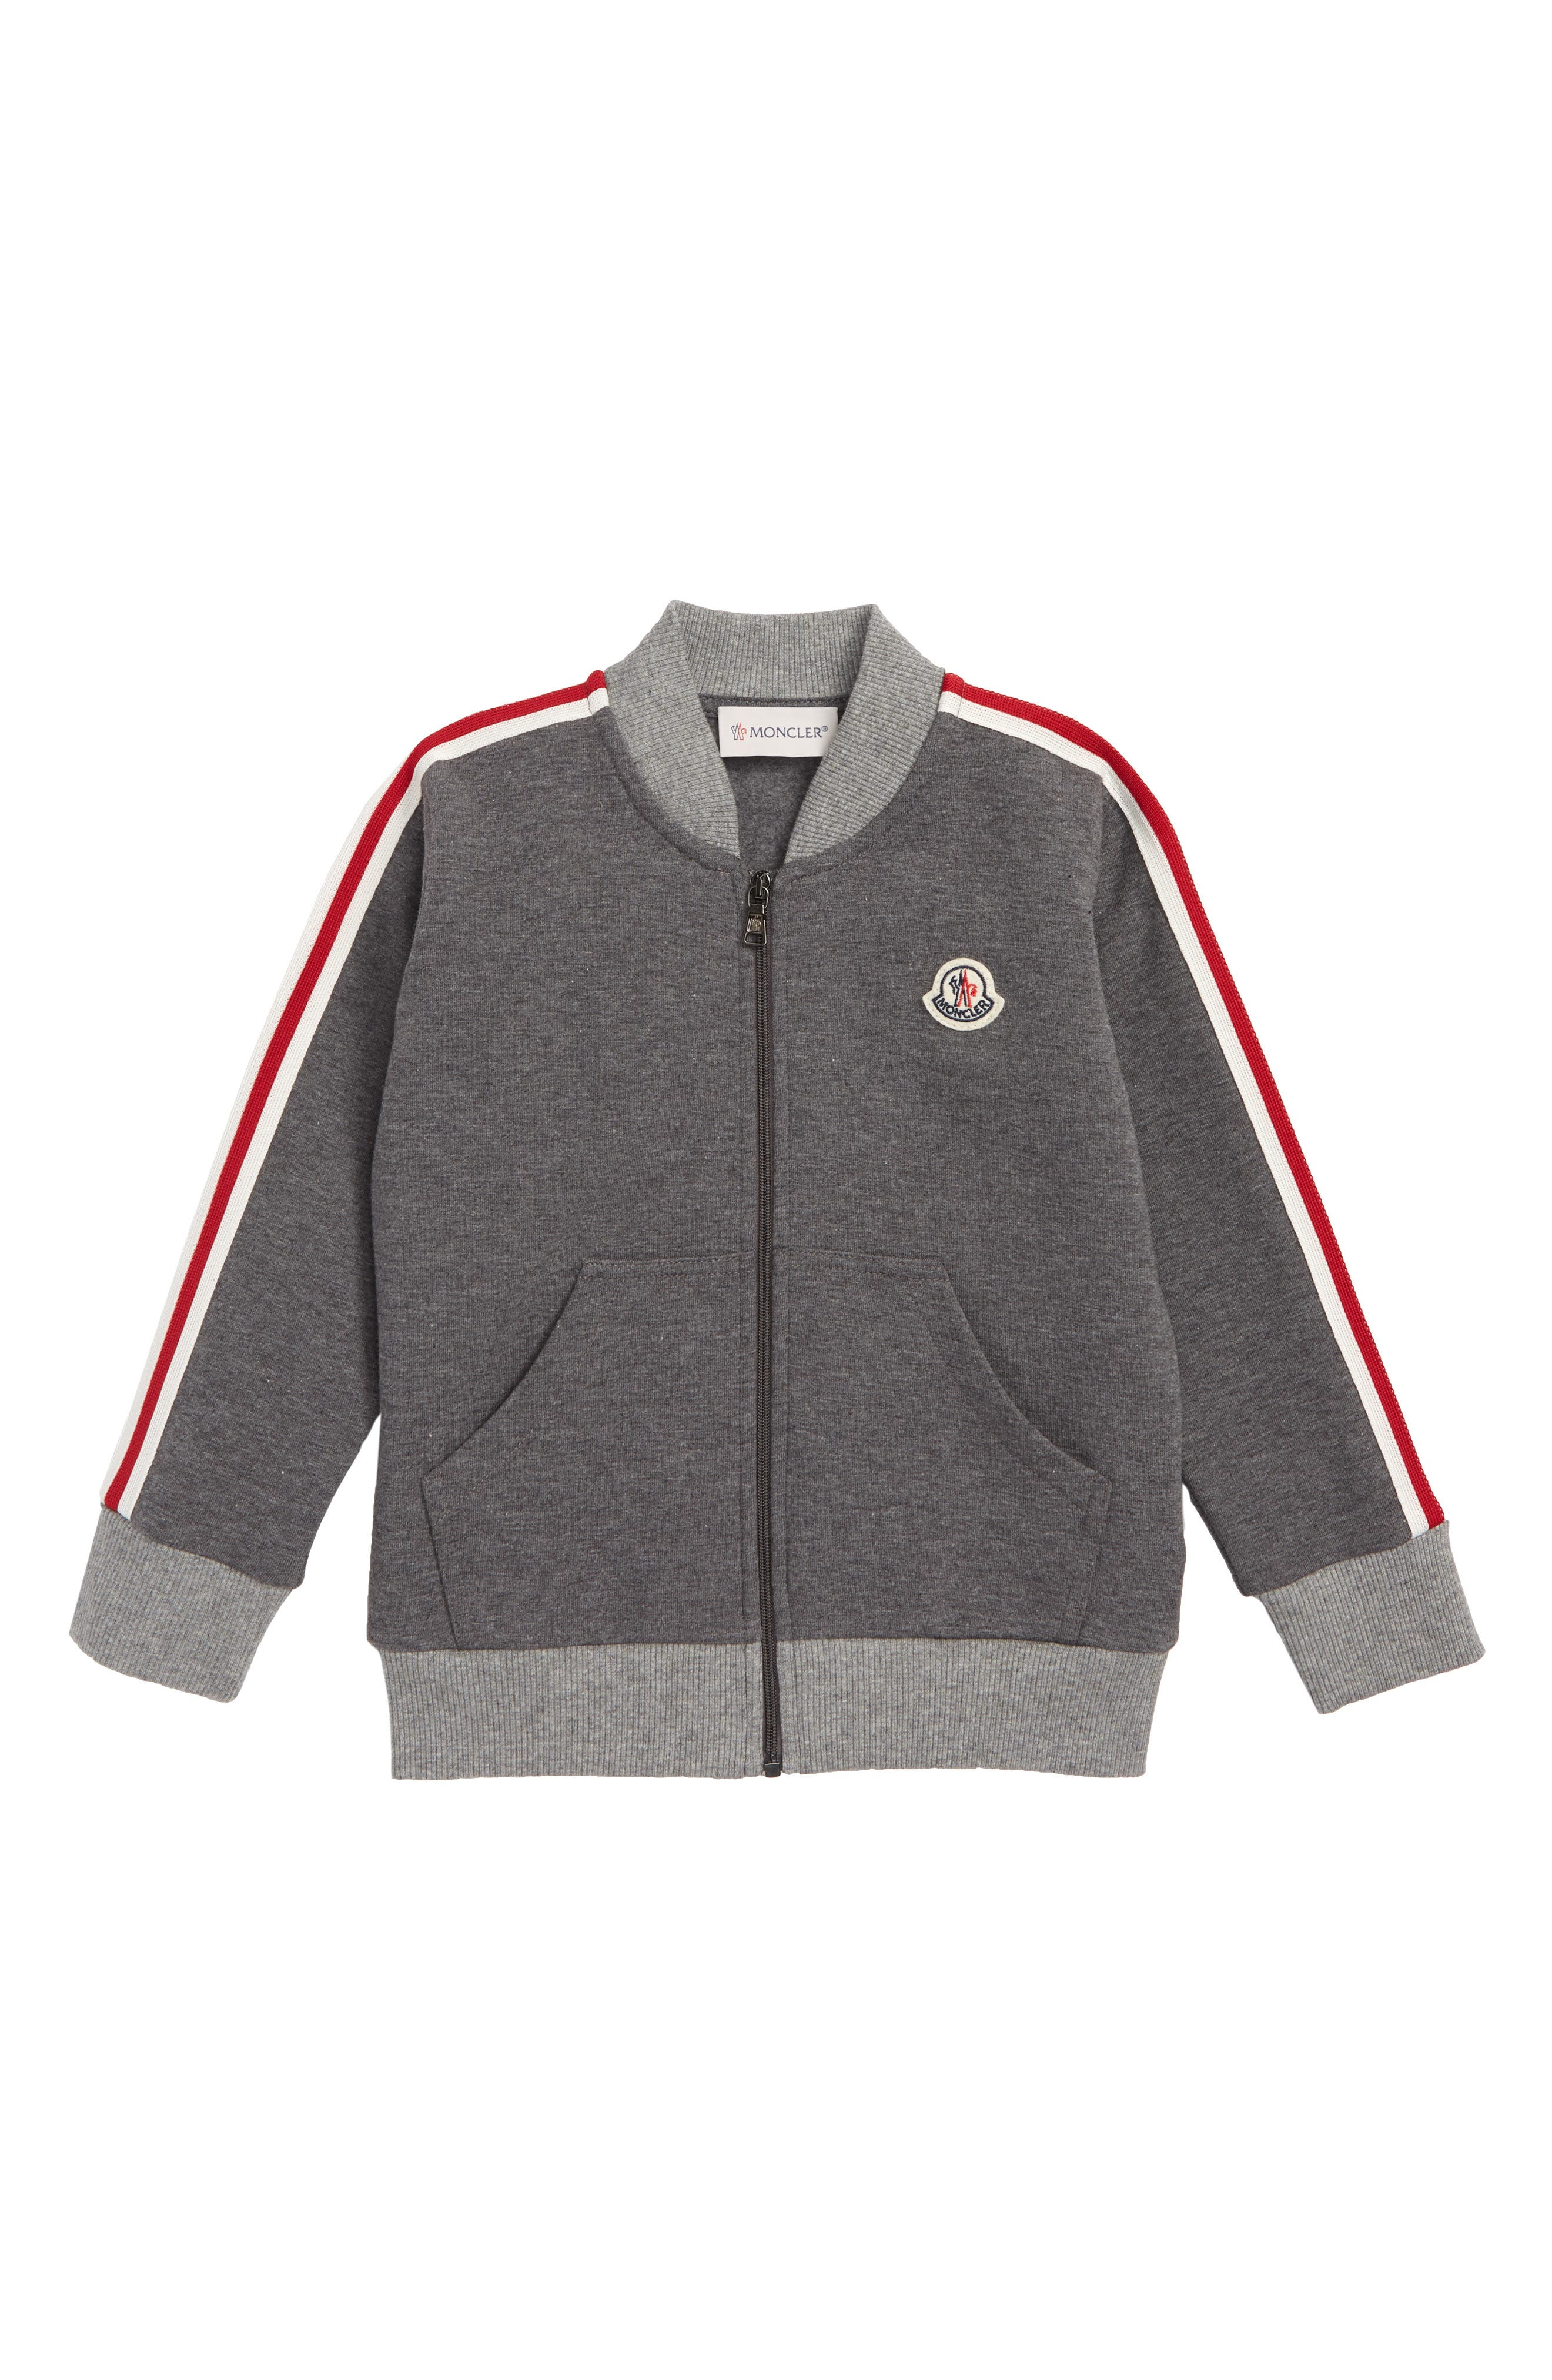 d67005506936 For Boys Moncler Clothing